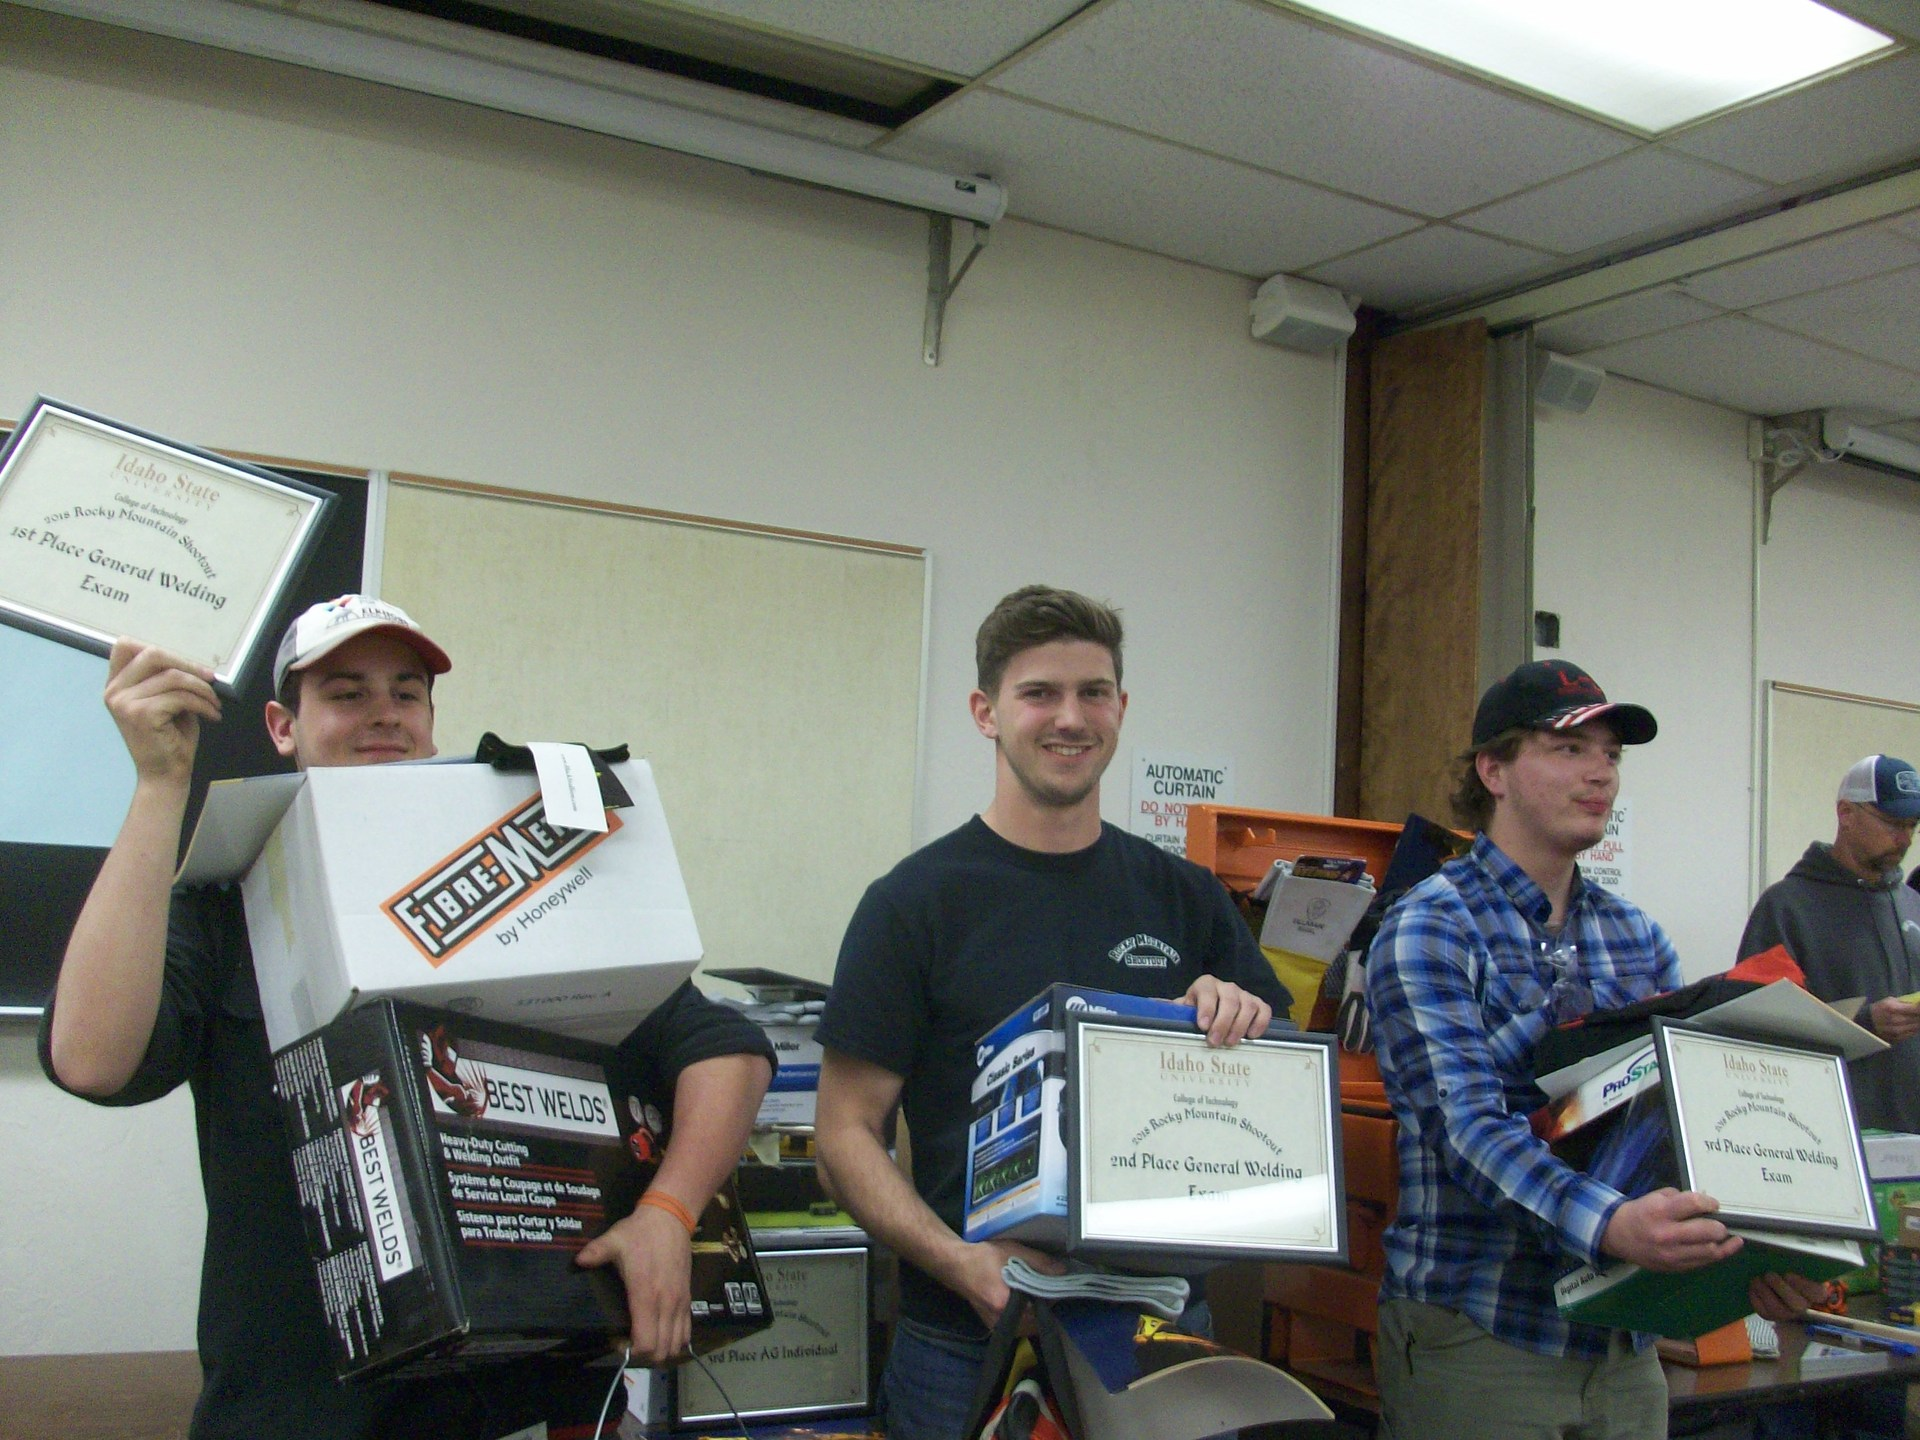 Welding Student hold their prizes